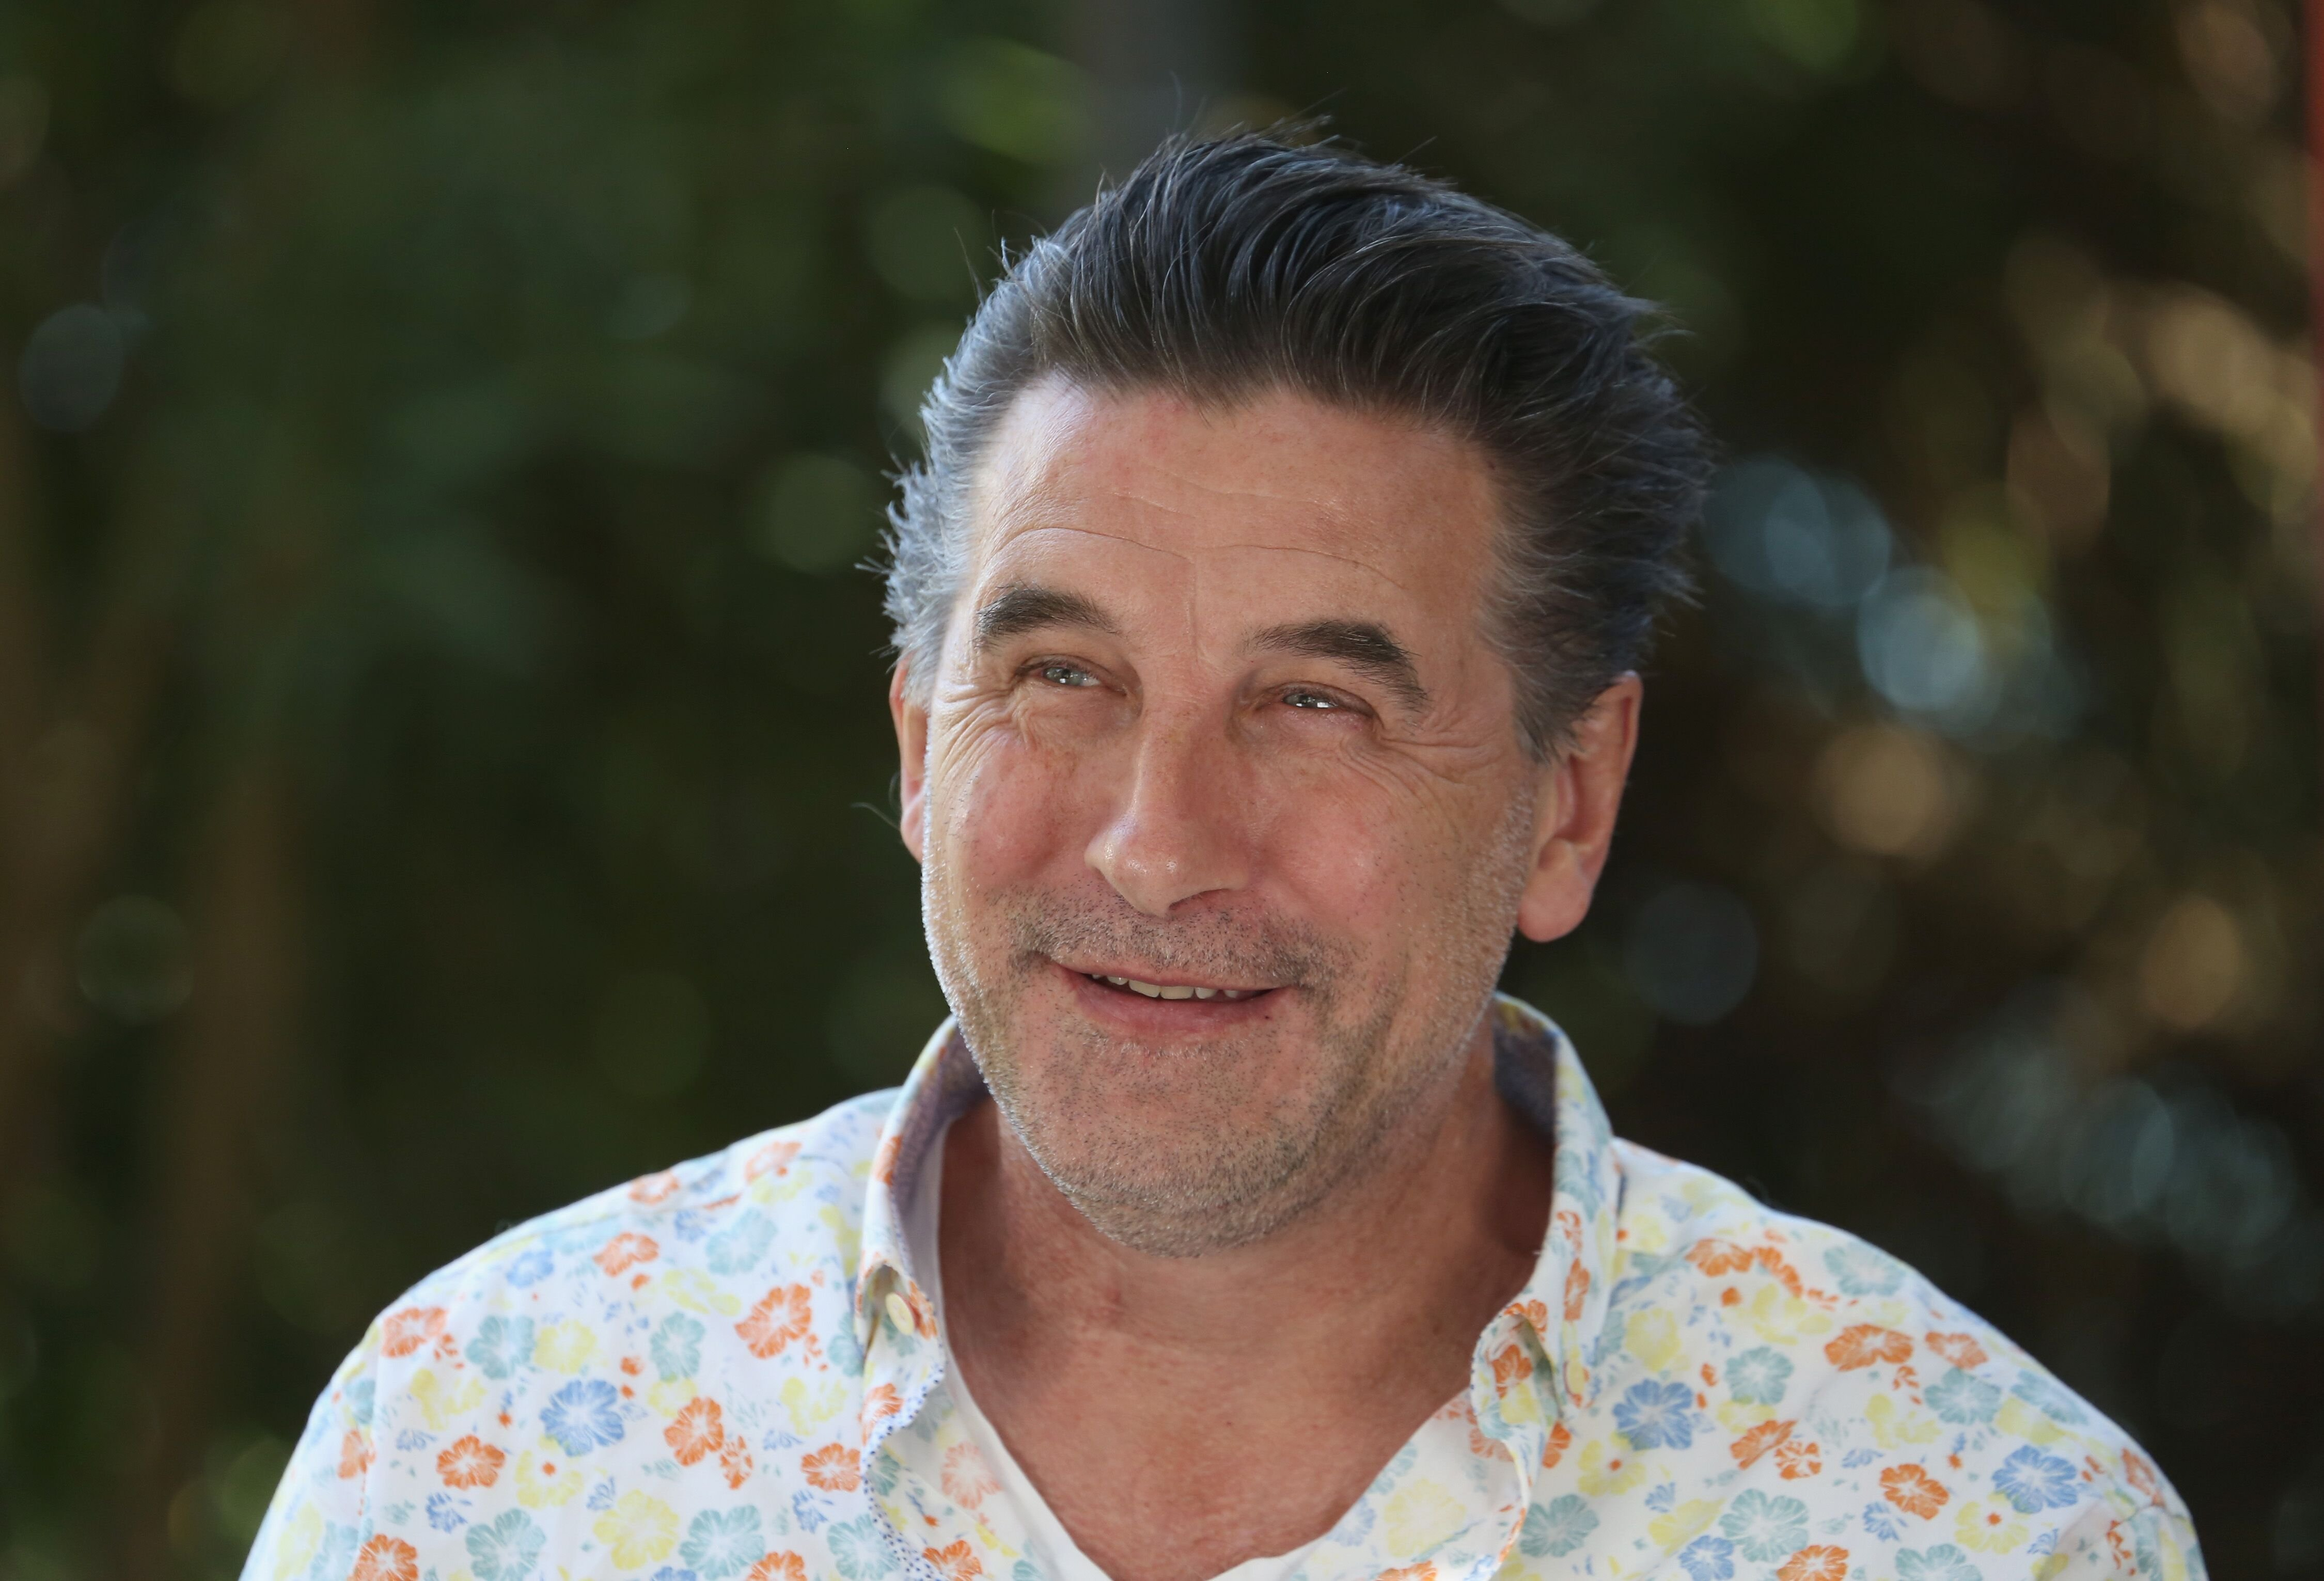 William Baldwin attends the Filming Italy Sardegna Festival 2019 Day 4 Photocall at Forte Village Resort on June 16, 2019 in Cagliari, Italy | Photo: Getty Images